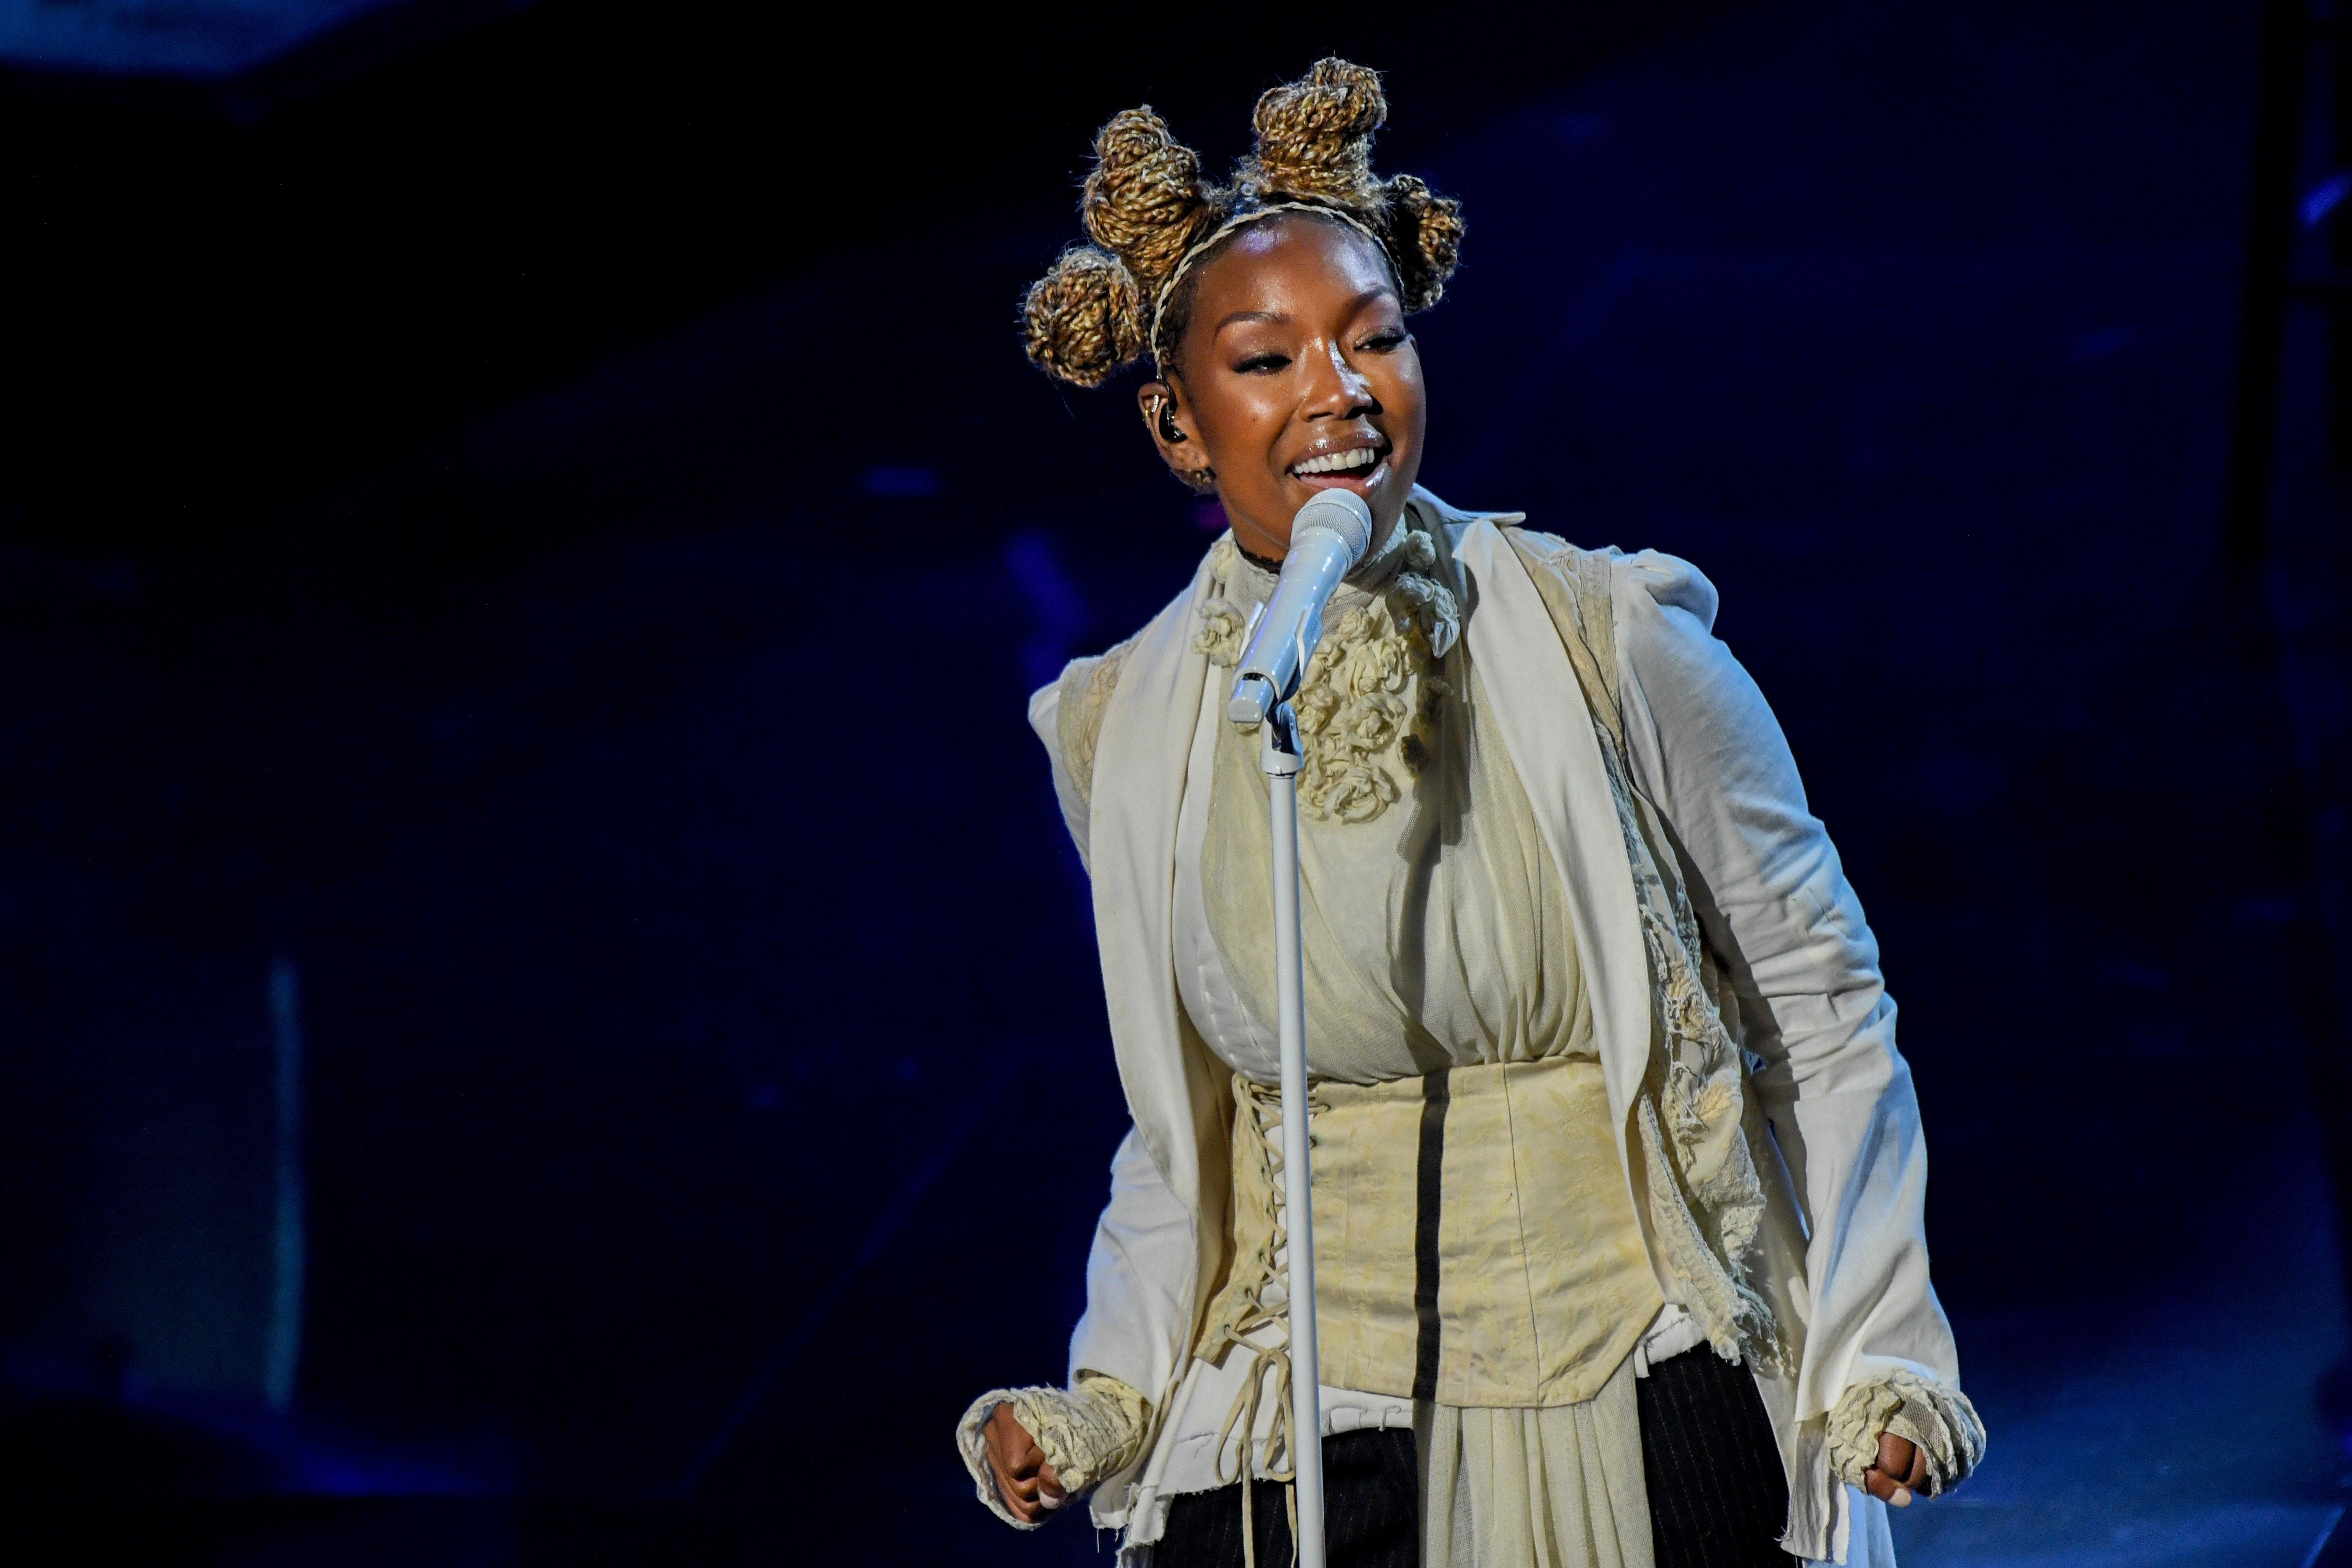 Brandy pictured during a performance at the 2020 Billboard Music Awards at the Dolby Theatre on October 14, 2020, Los Angeles, CA. | Source: Getty Images